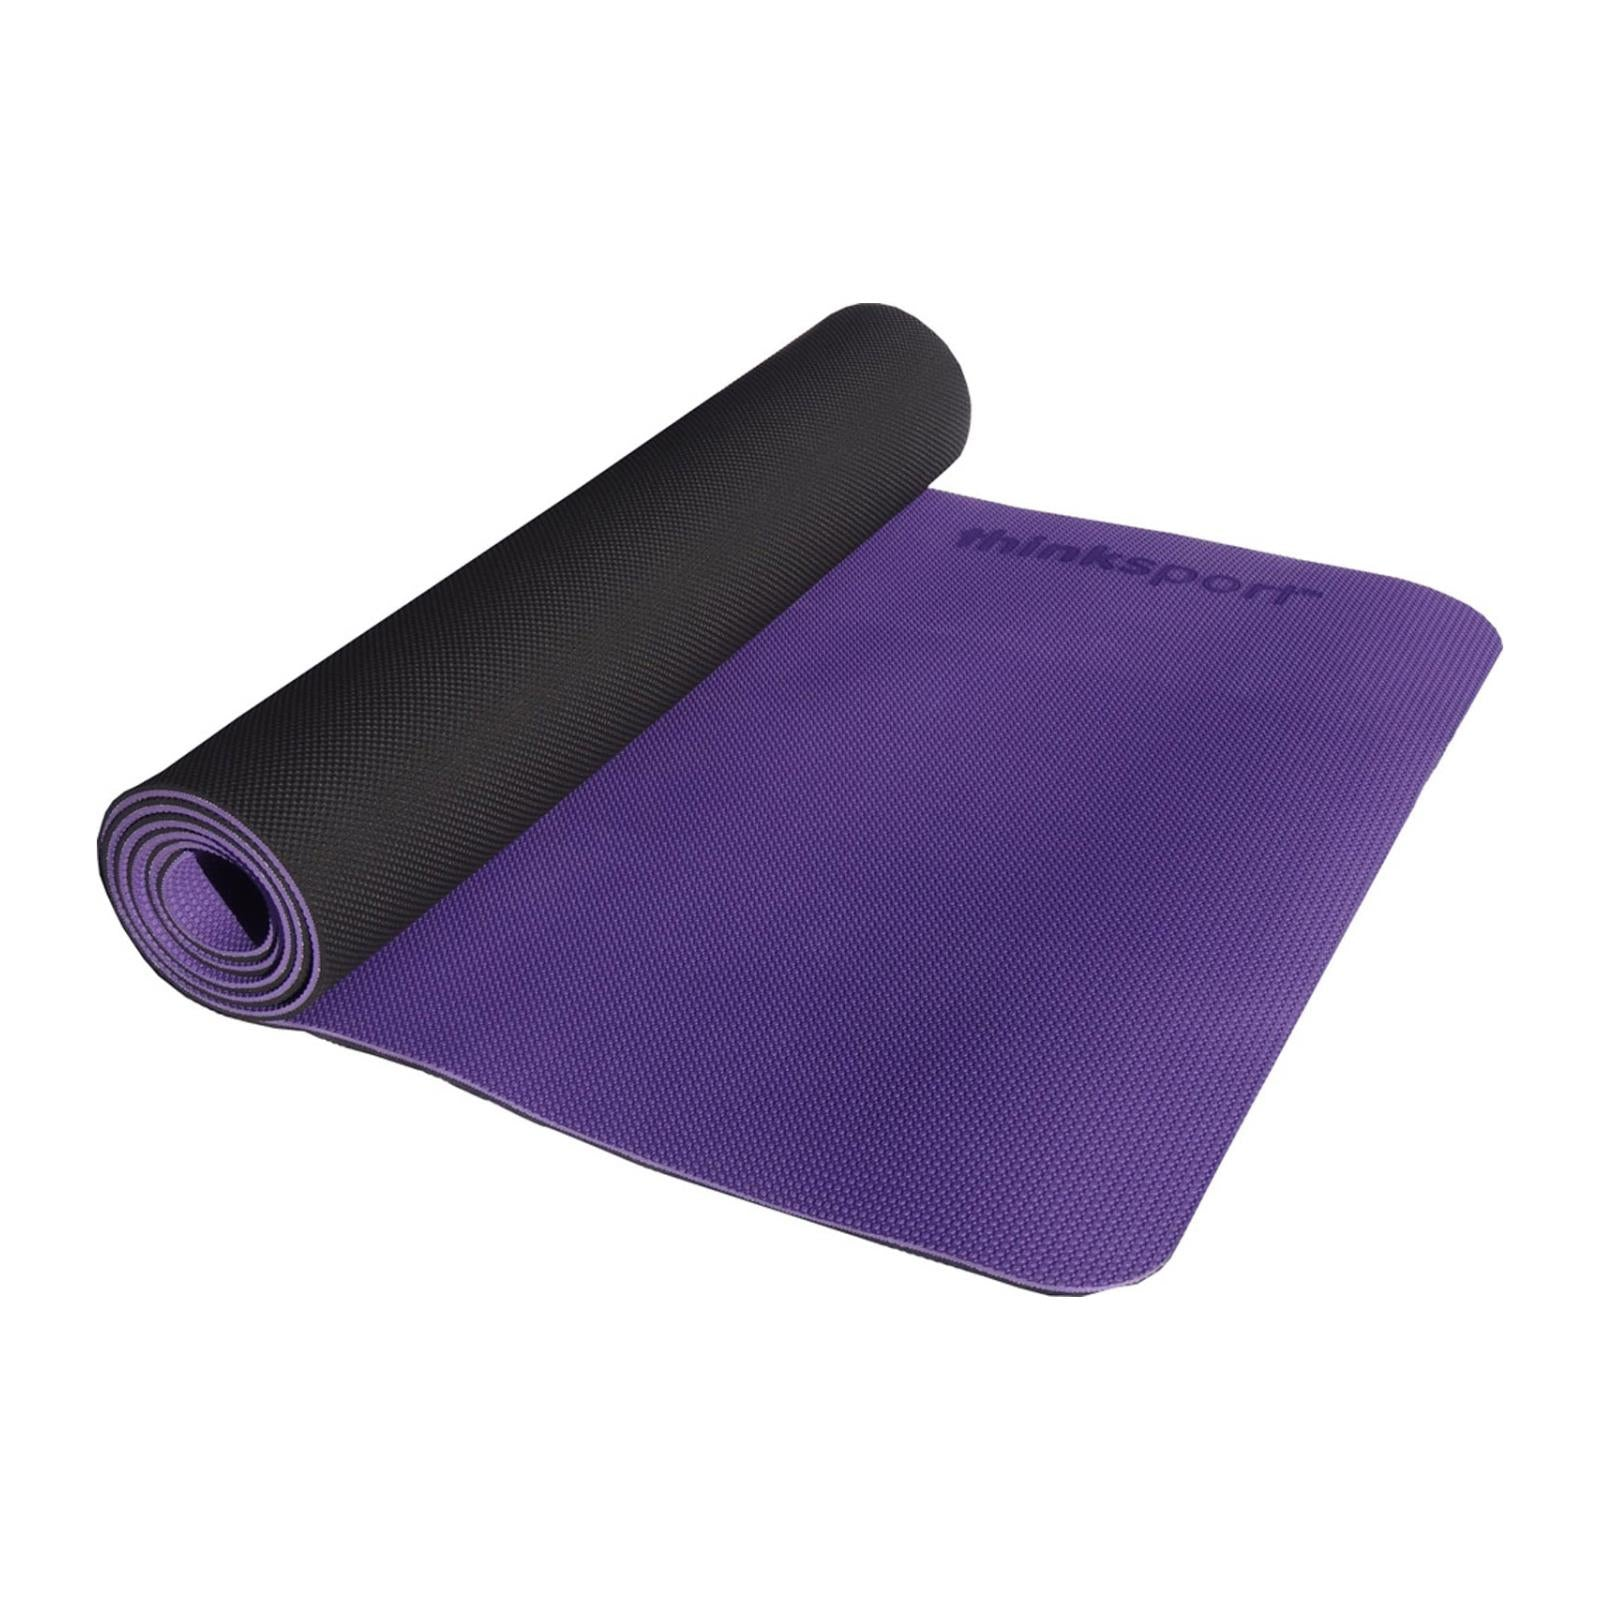 Buy Thinksport Yoga Mat - Purple/Black - Yoga from Veroeco.com